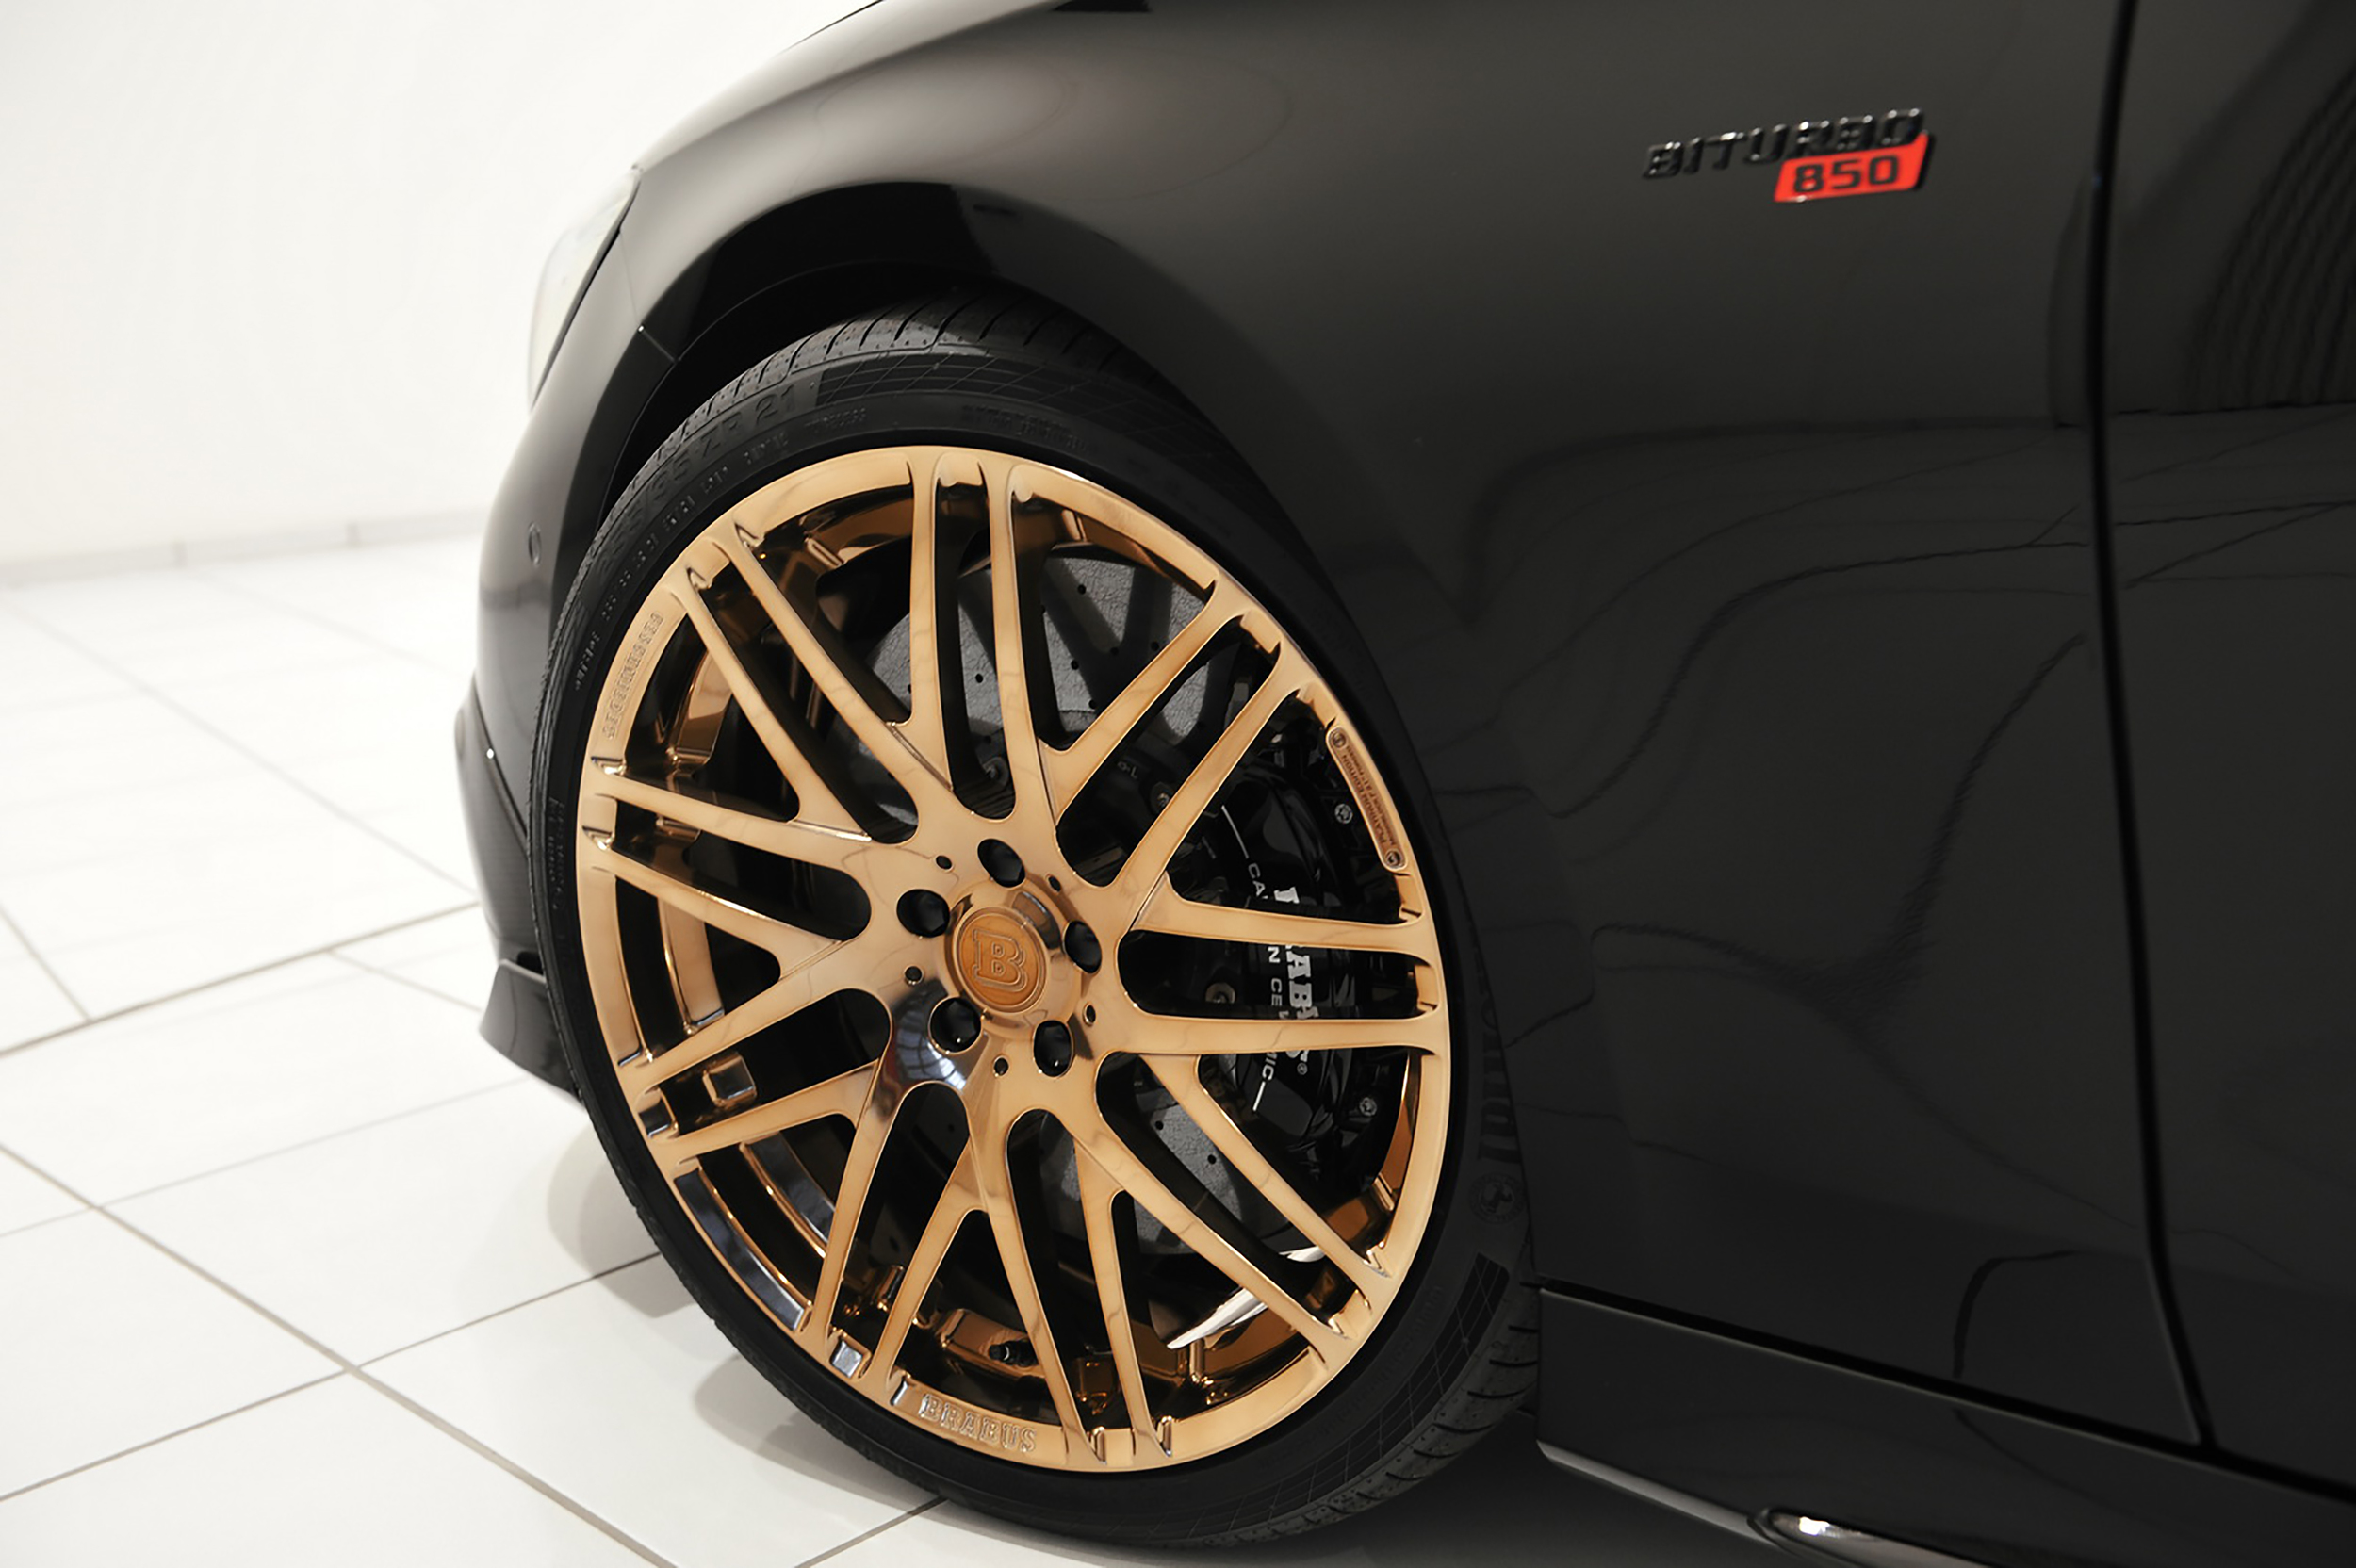 ' ' from the web at 'http://www.blogcdn.com/slideshows/images/slides/335/950/3/S3359503/slug/l/brabus-s-class-coupe-24-1.jpg'